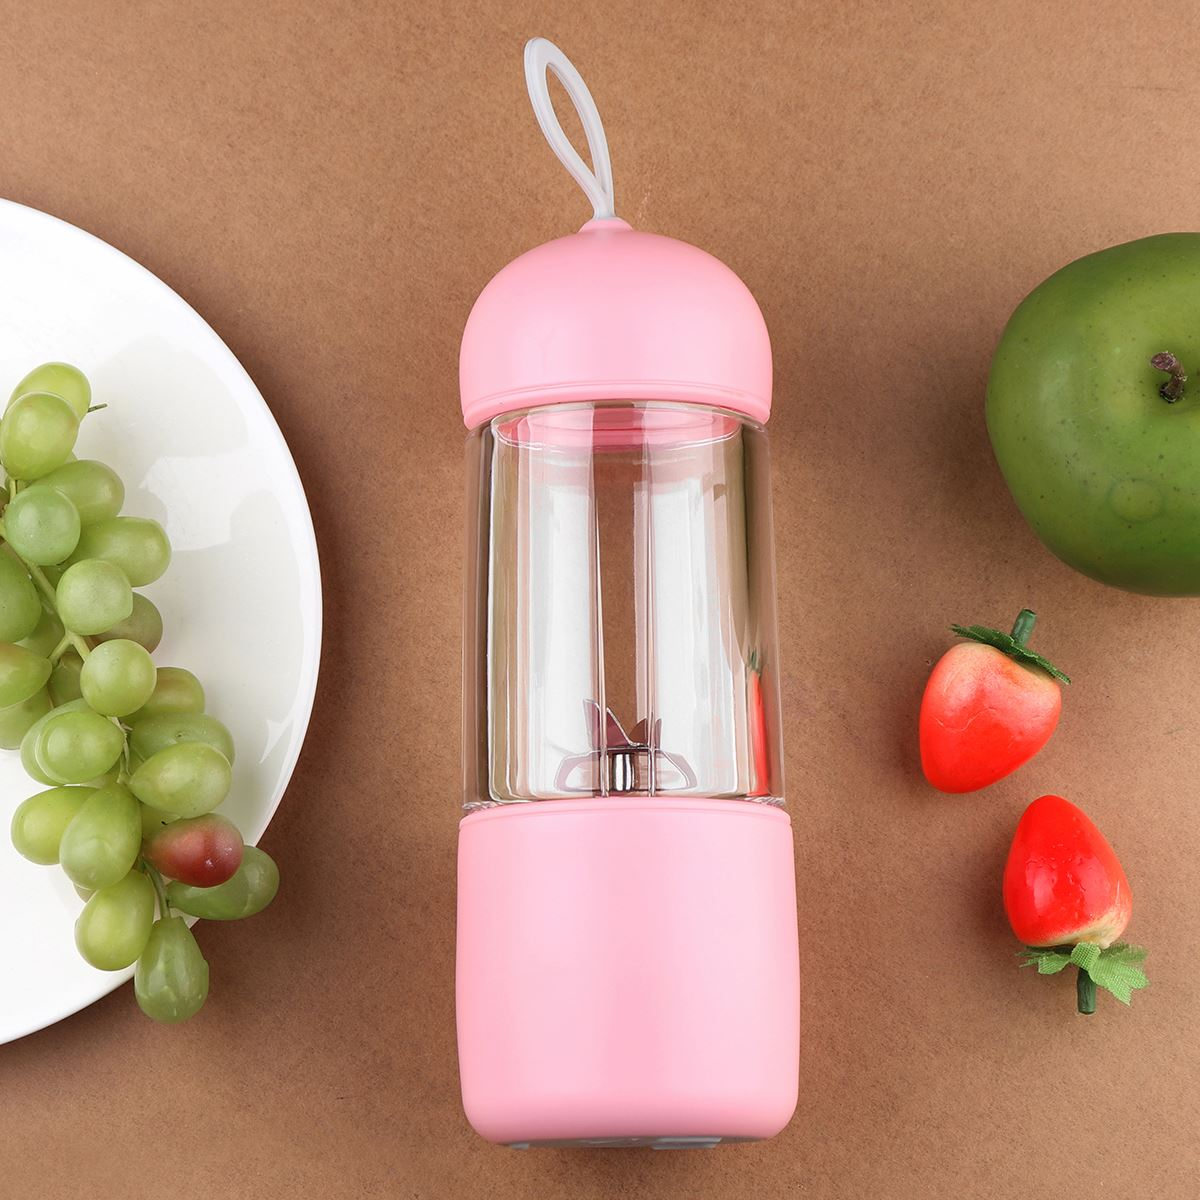 1Pcs Portable Blender Mixer Juicer High Power Food Processor Ice Smoothie Household Fruit Blender Mini Juicer 1pc wj a6 2200w heavy duty commercial grade blender mixer juicer food processor ice smoothie bar fruit stainless steel abs 220v